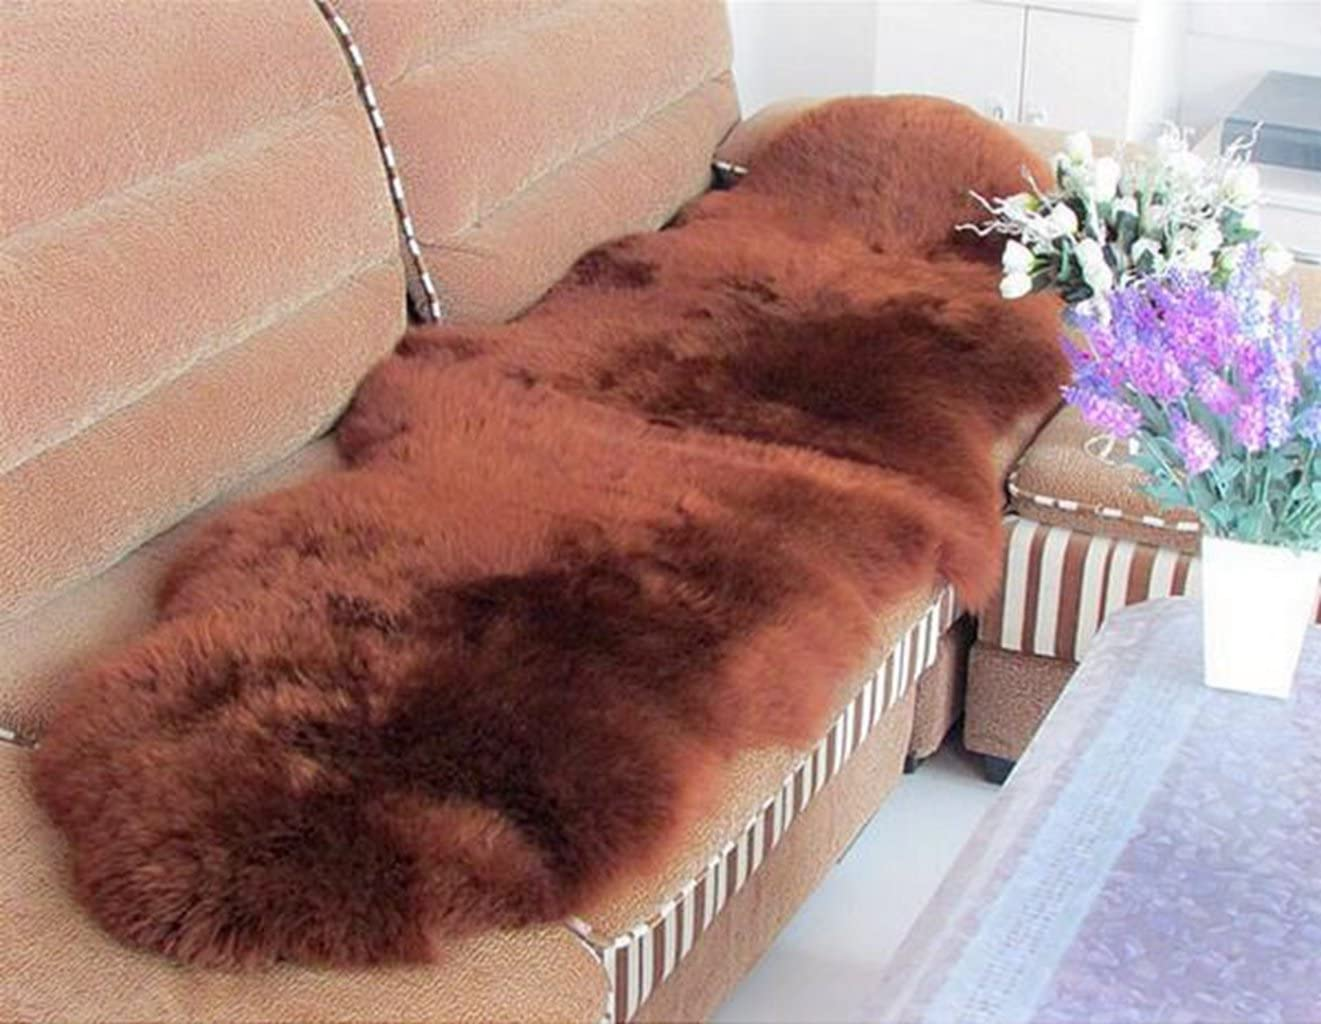 Prettybuy Genuine Australian Sheepskin Rug One Pelt Black Natural Fur, Single, Approx. 2ft. x 3ft.Coffee